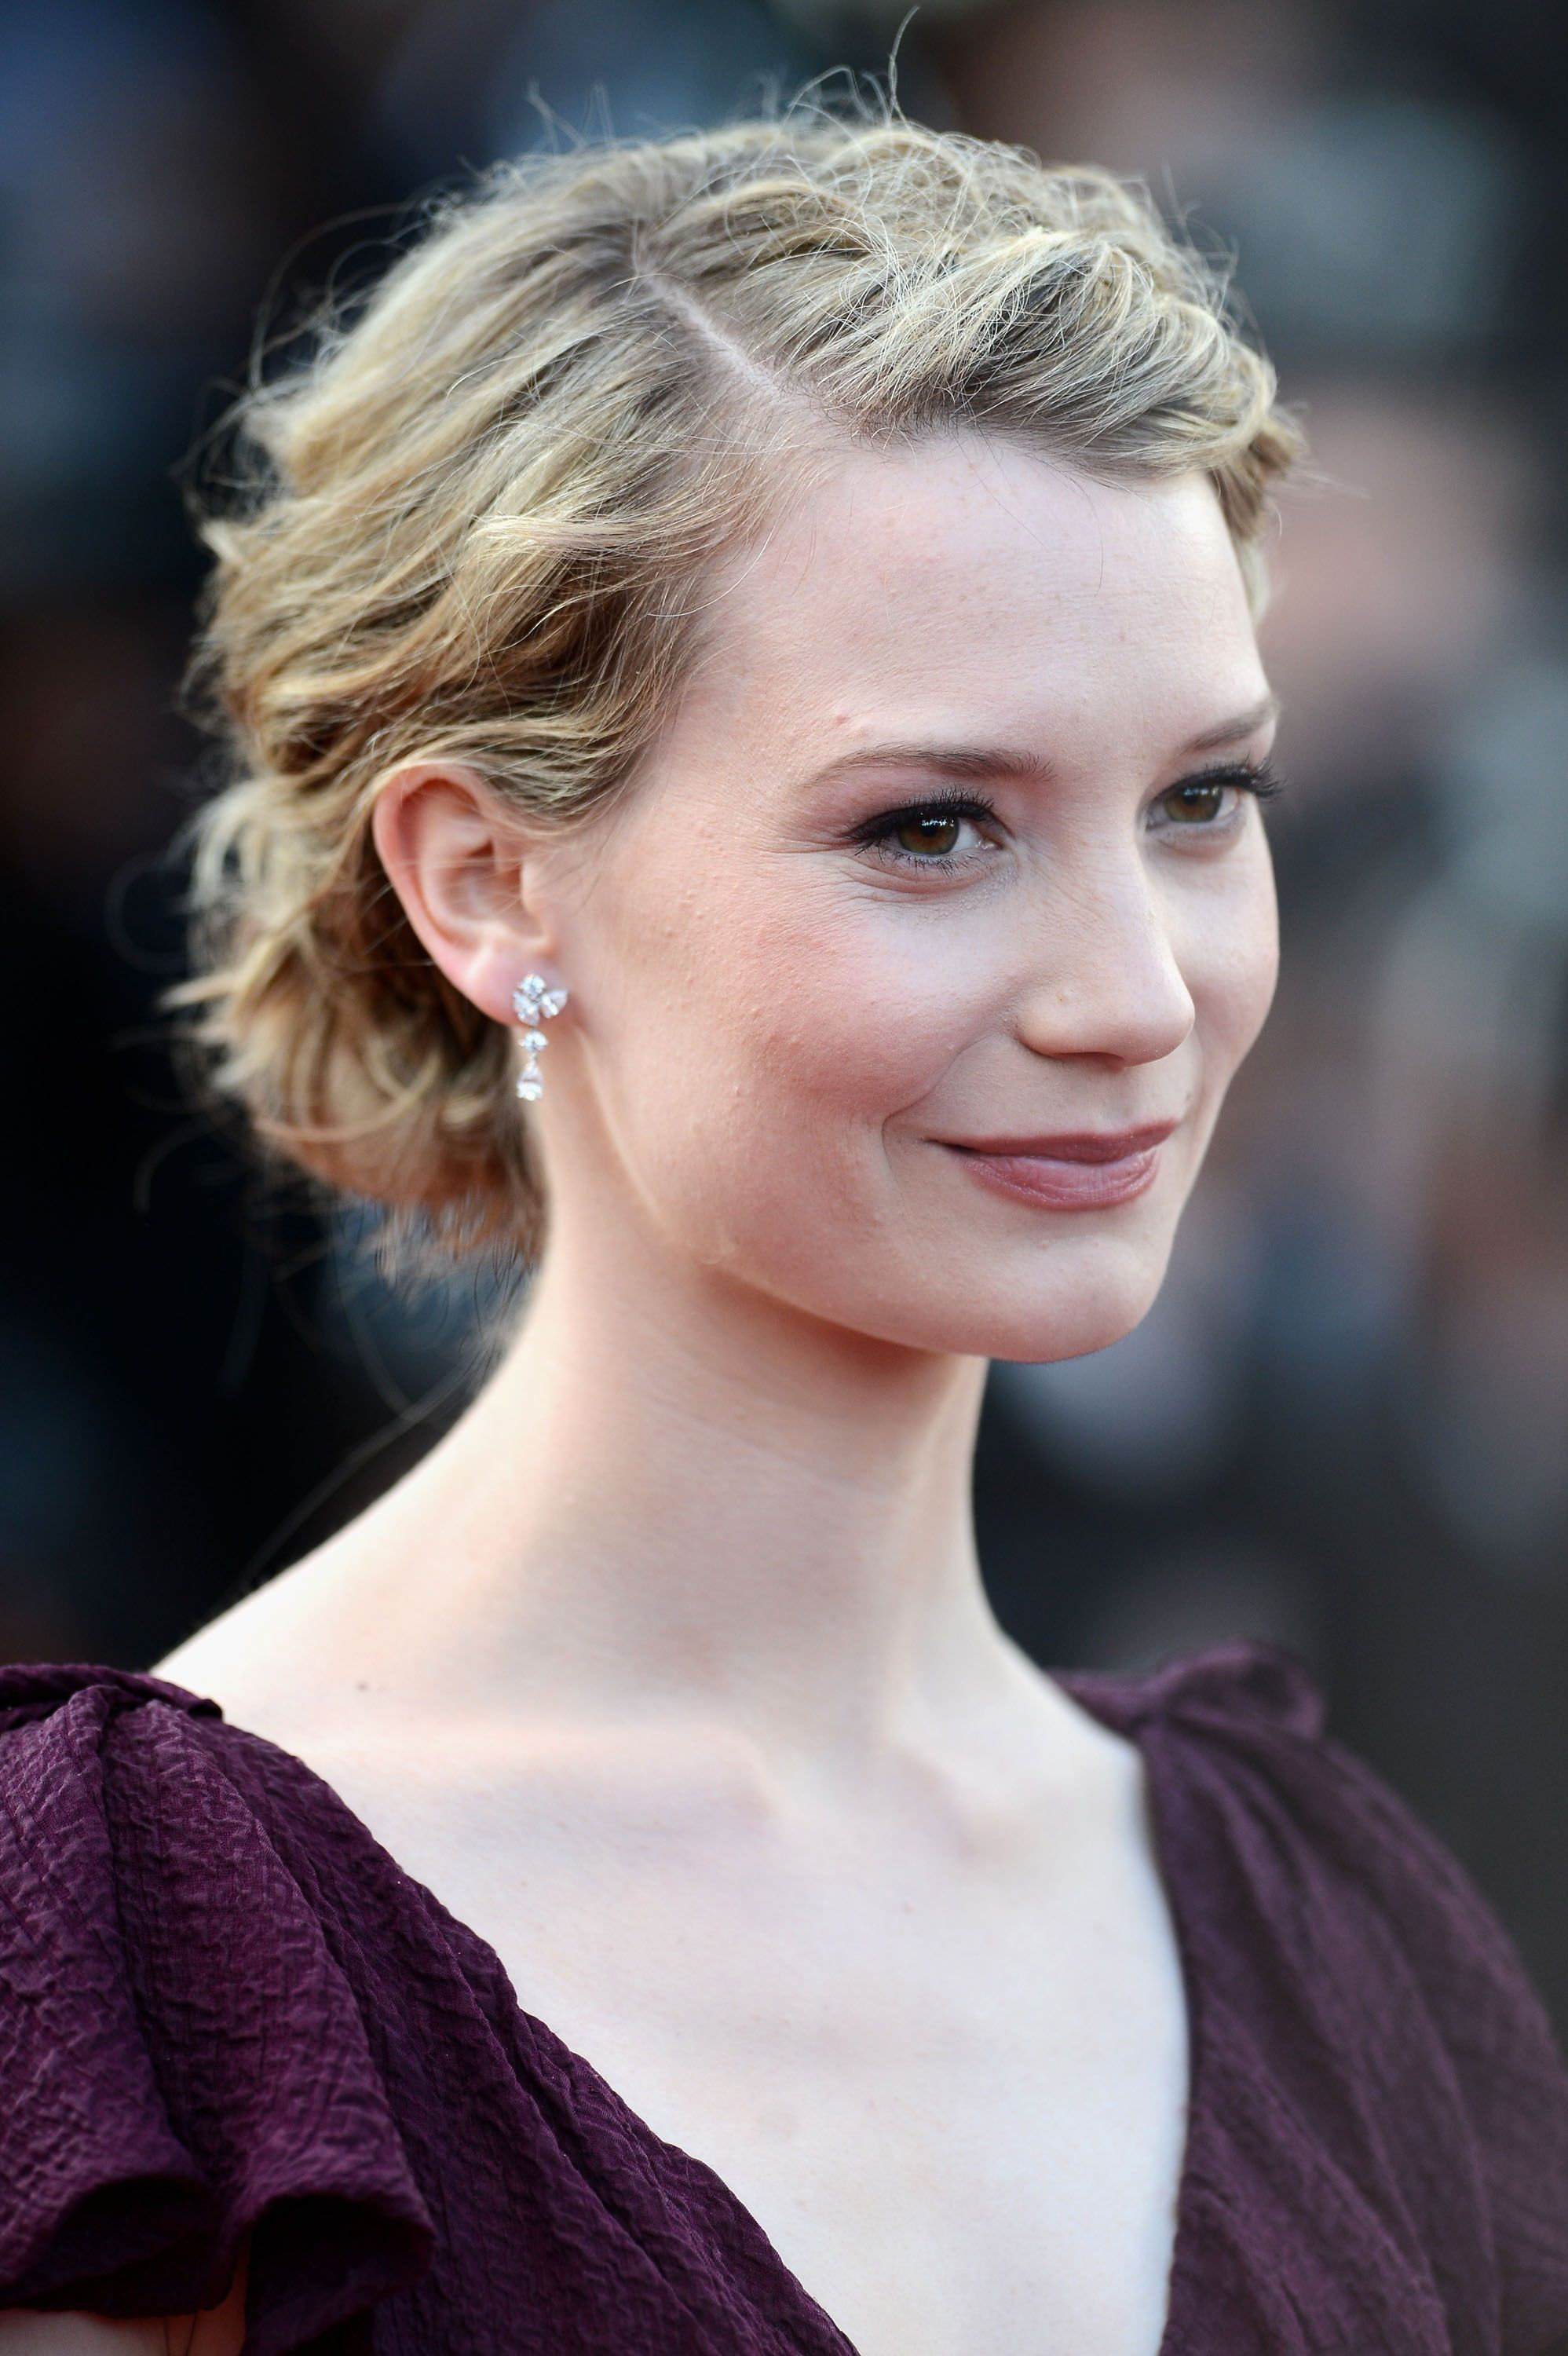 1000+ images about mia wasikowska on Pinterest